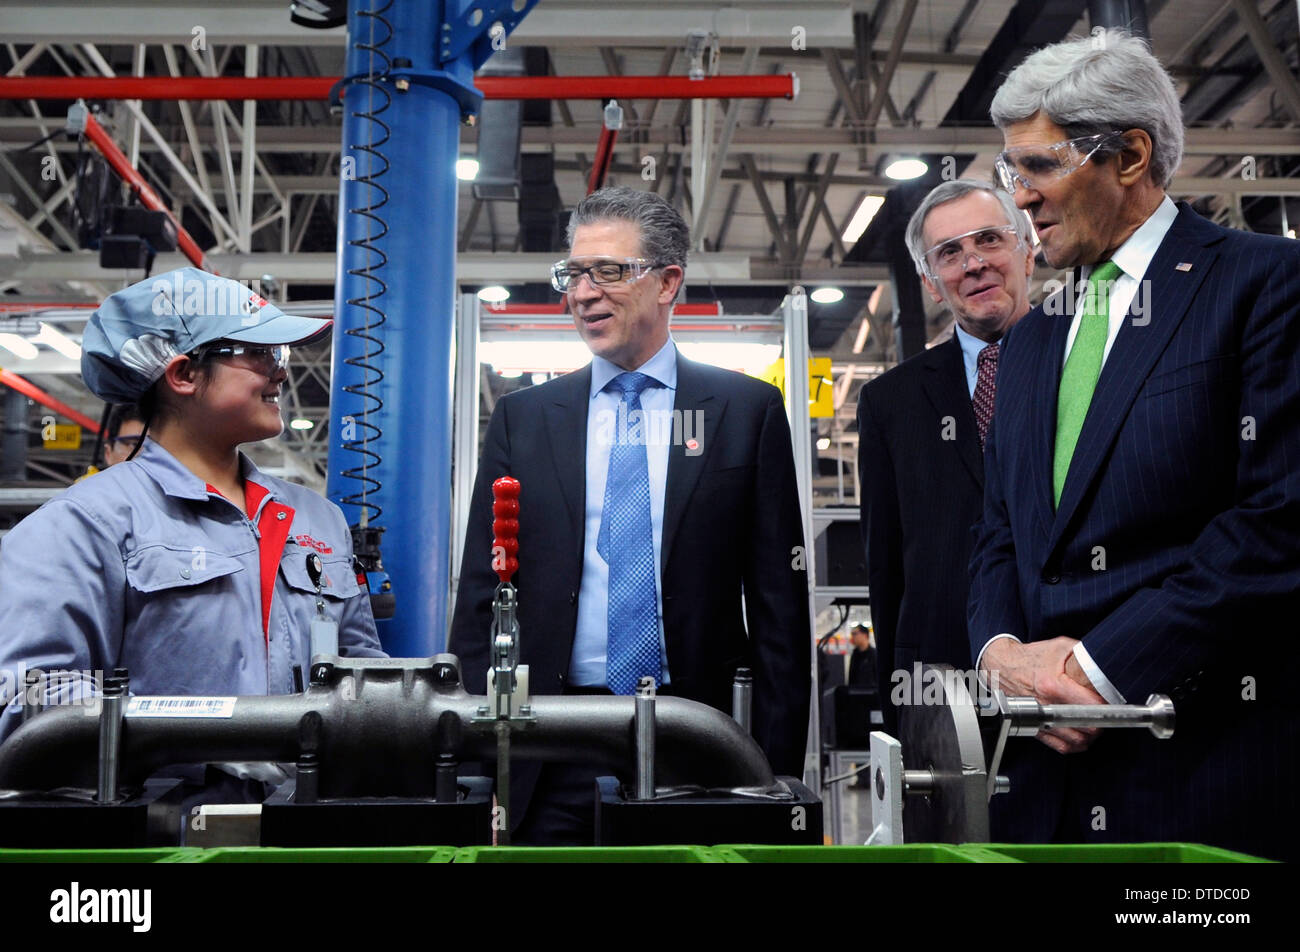 US Secretary of State John Kerry speaks with a assembly line worker as Cummins Vice President Steve Chapman looks Stock Photo